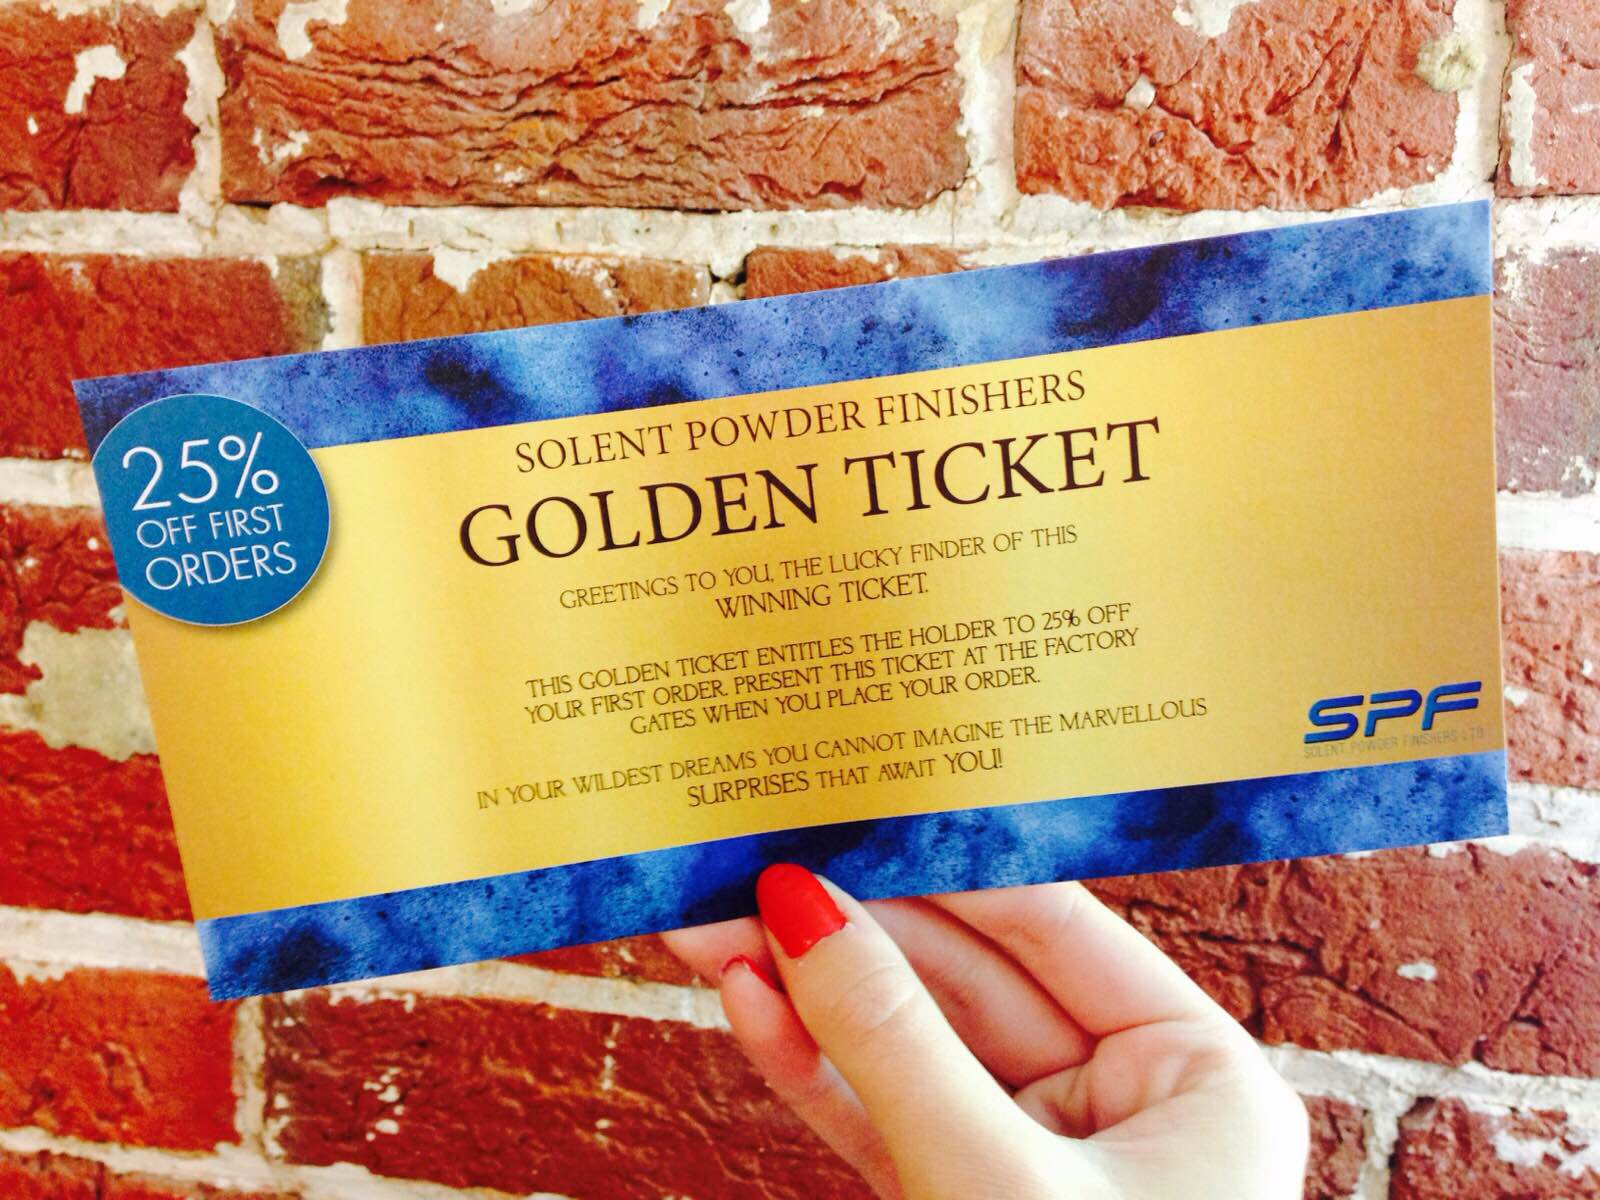 Congratulations on finding your golden ticket!